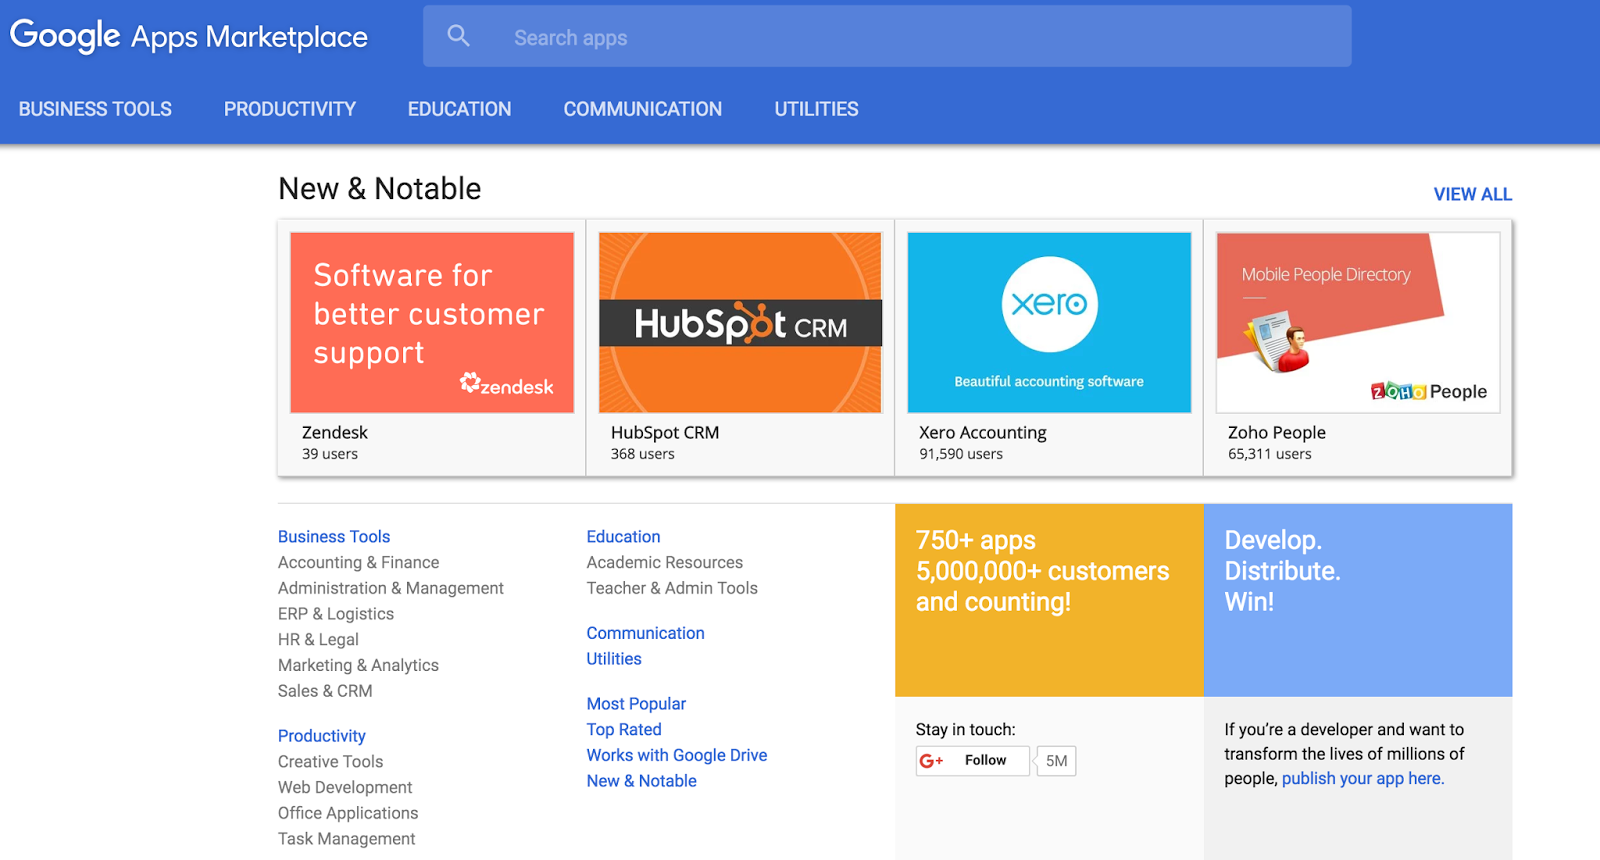 gsuite-new-notable